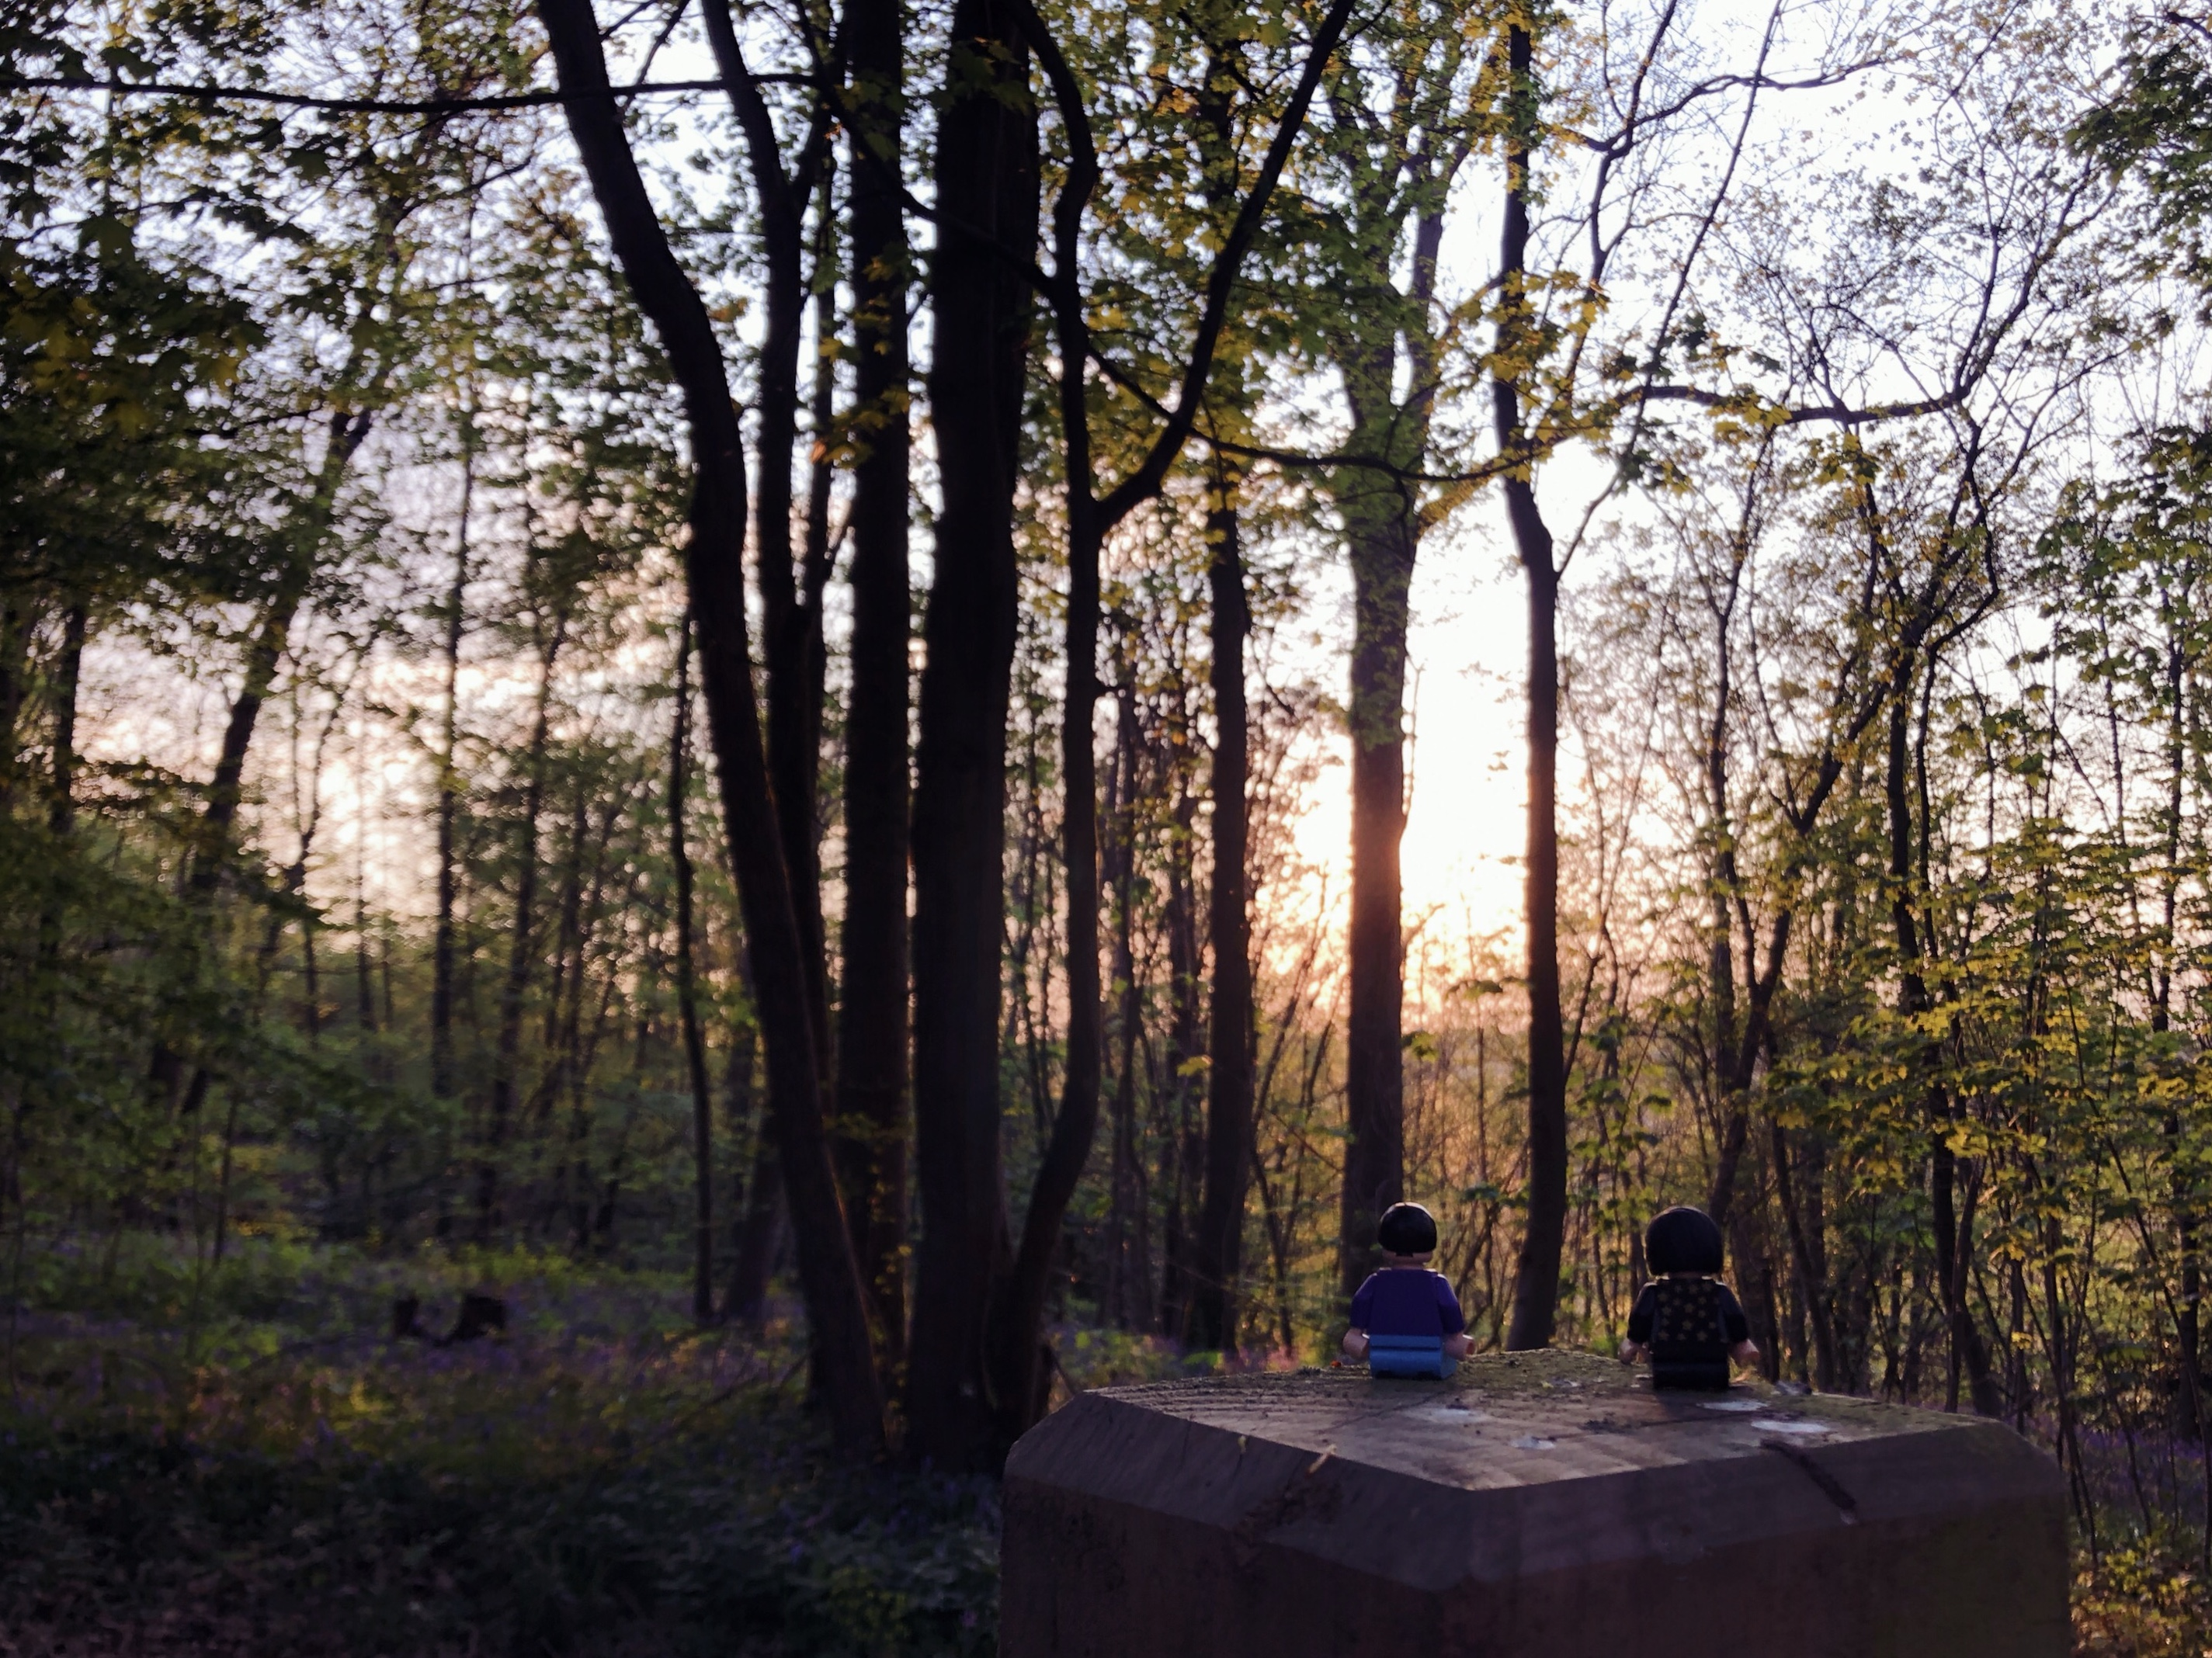 The same lego couple sat on a wooden pedestal, looking onto the background of the woods during sunset. The dulled sun filters through the trees.